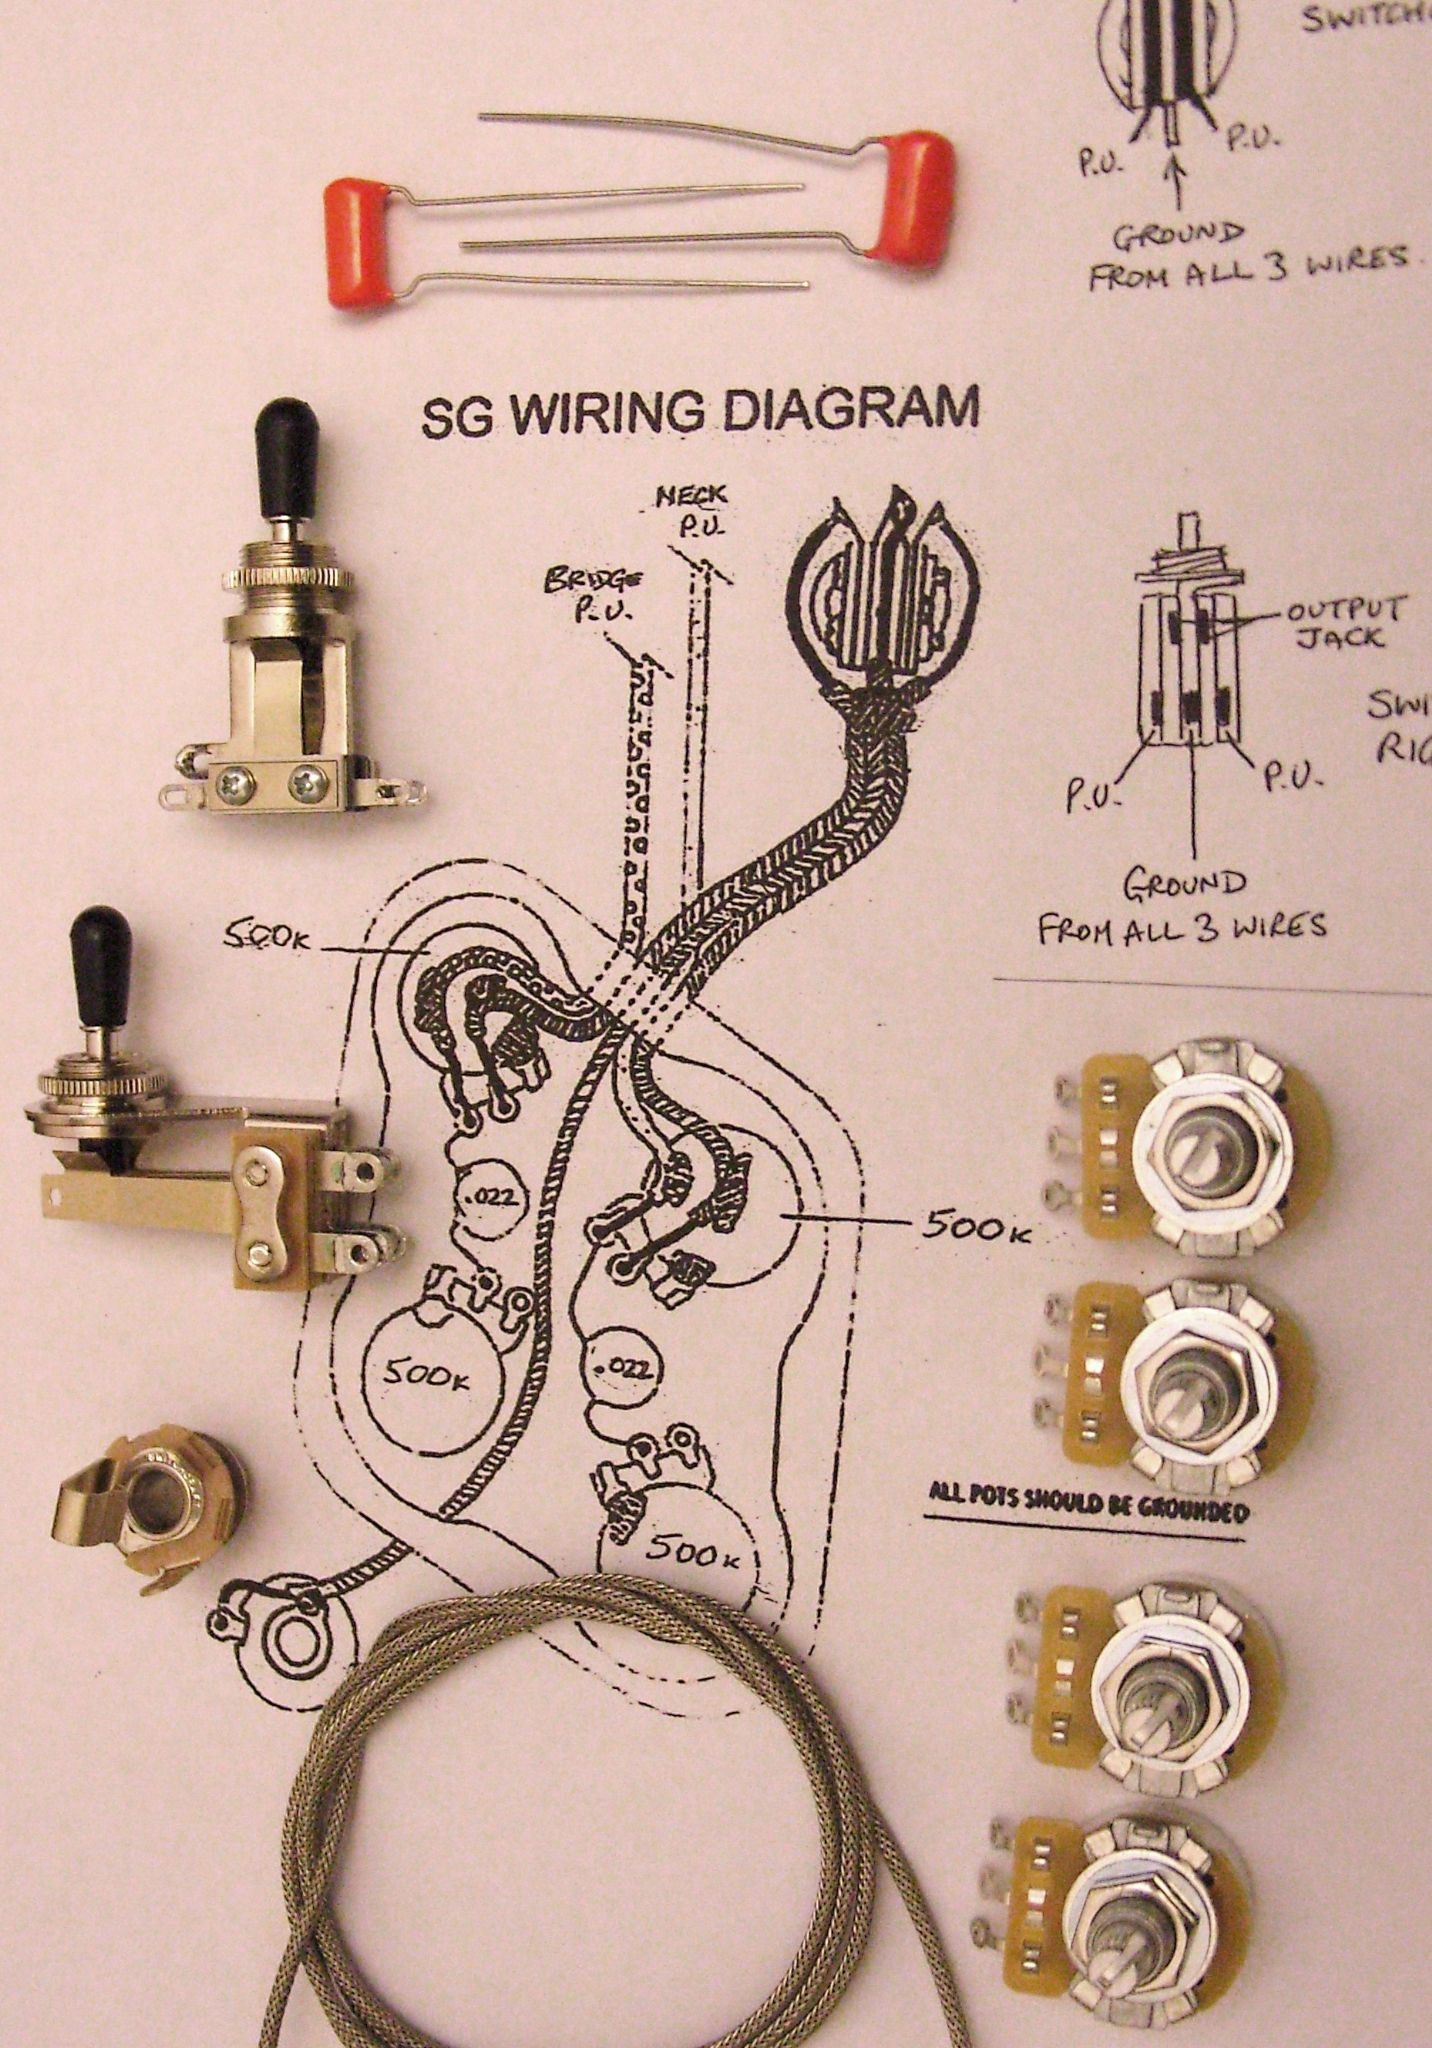 wiring kit for sg with right angle switchcraft toggle switch